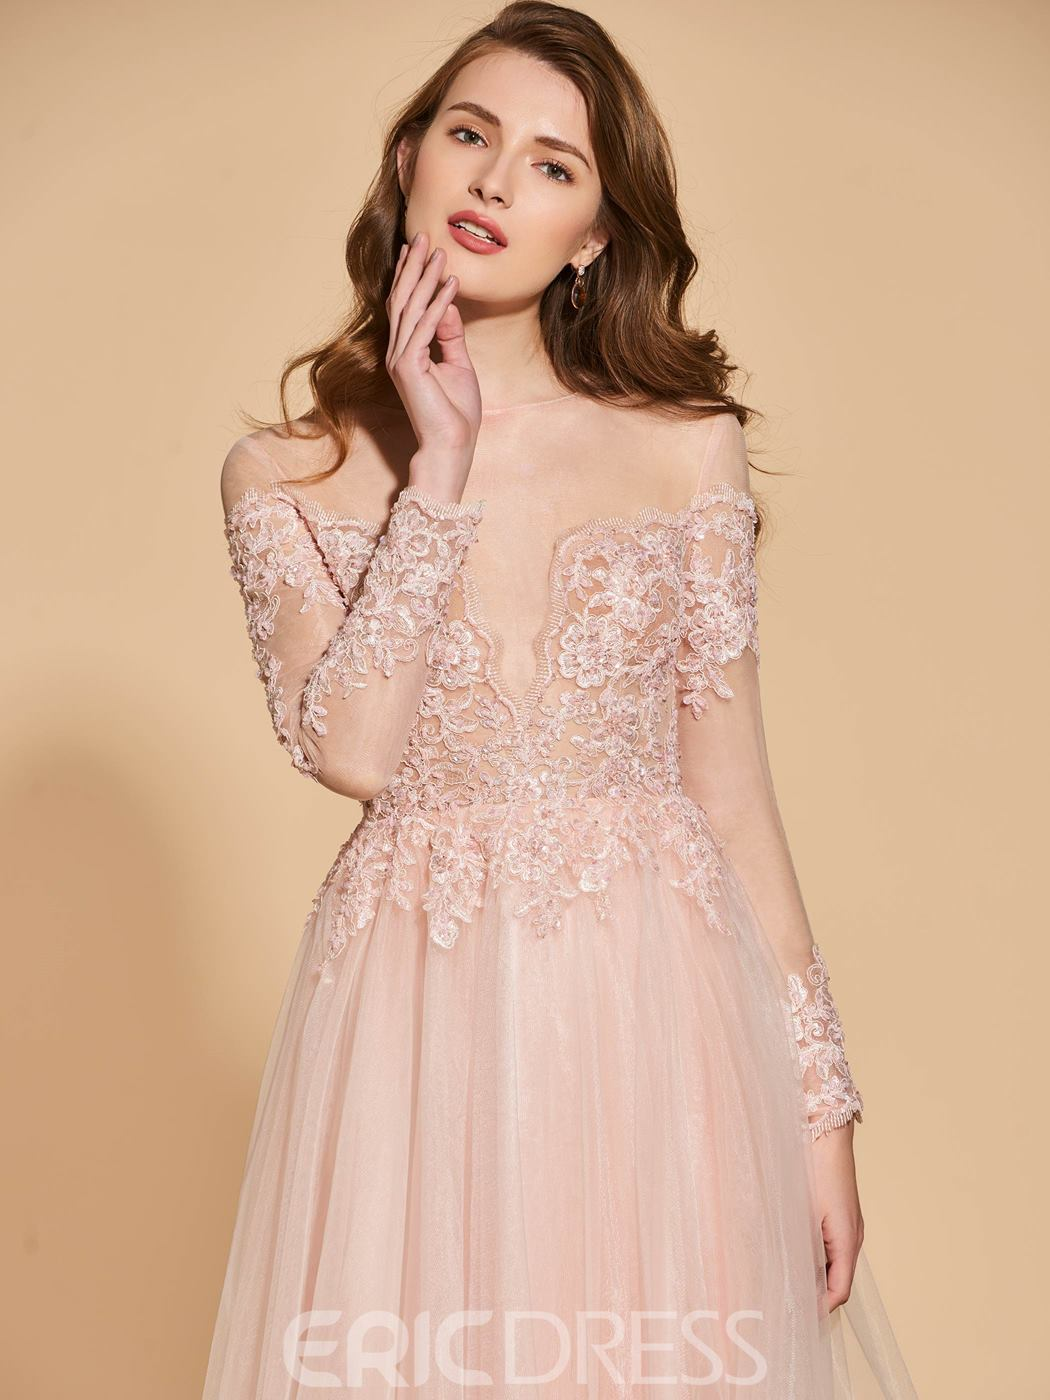 Ericdress A Line Applique Lace Long Sleeve Prom Dress